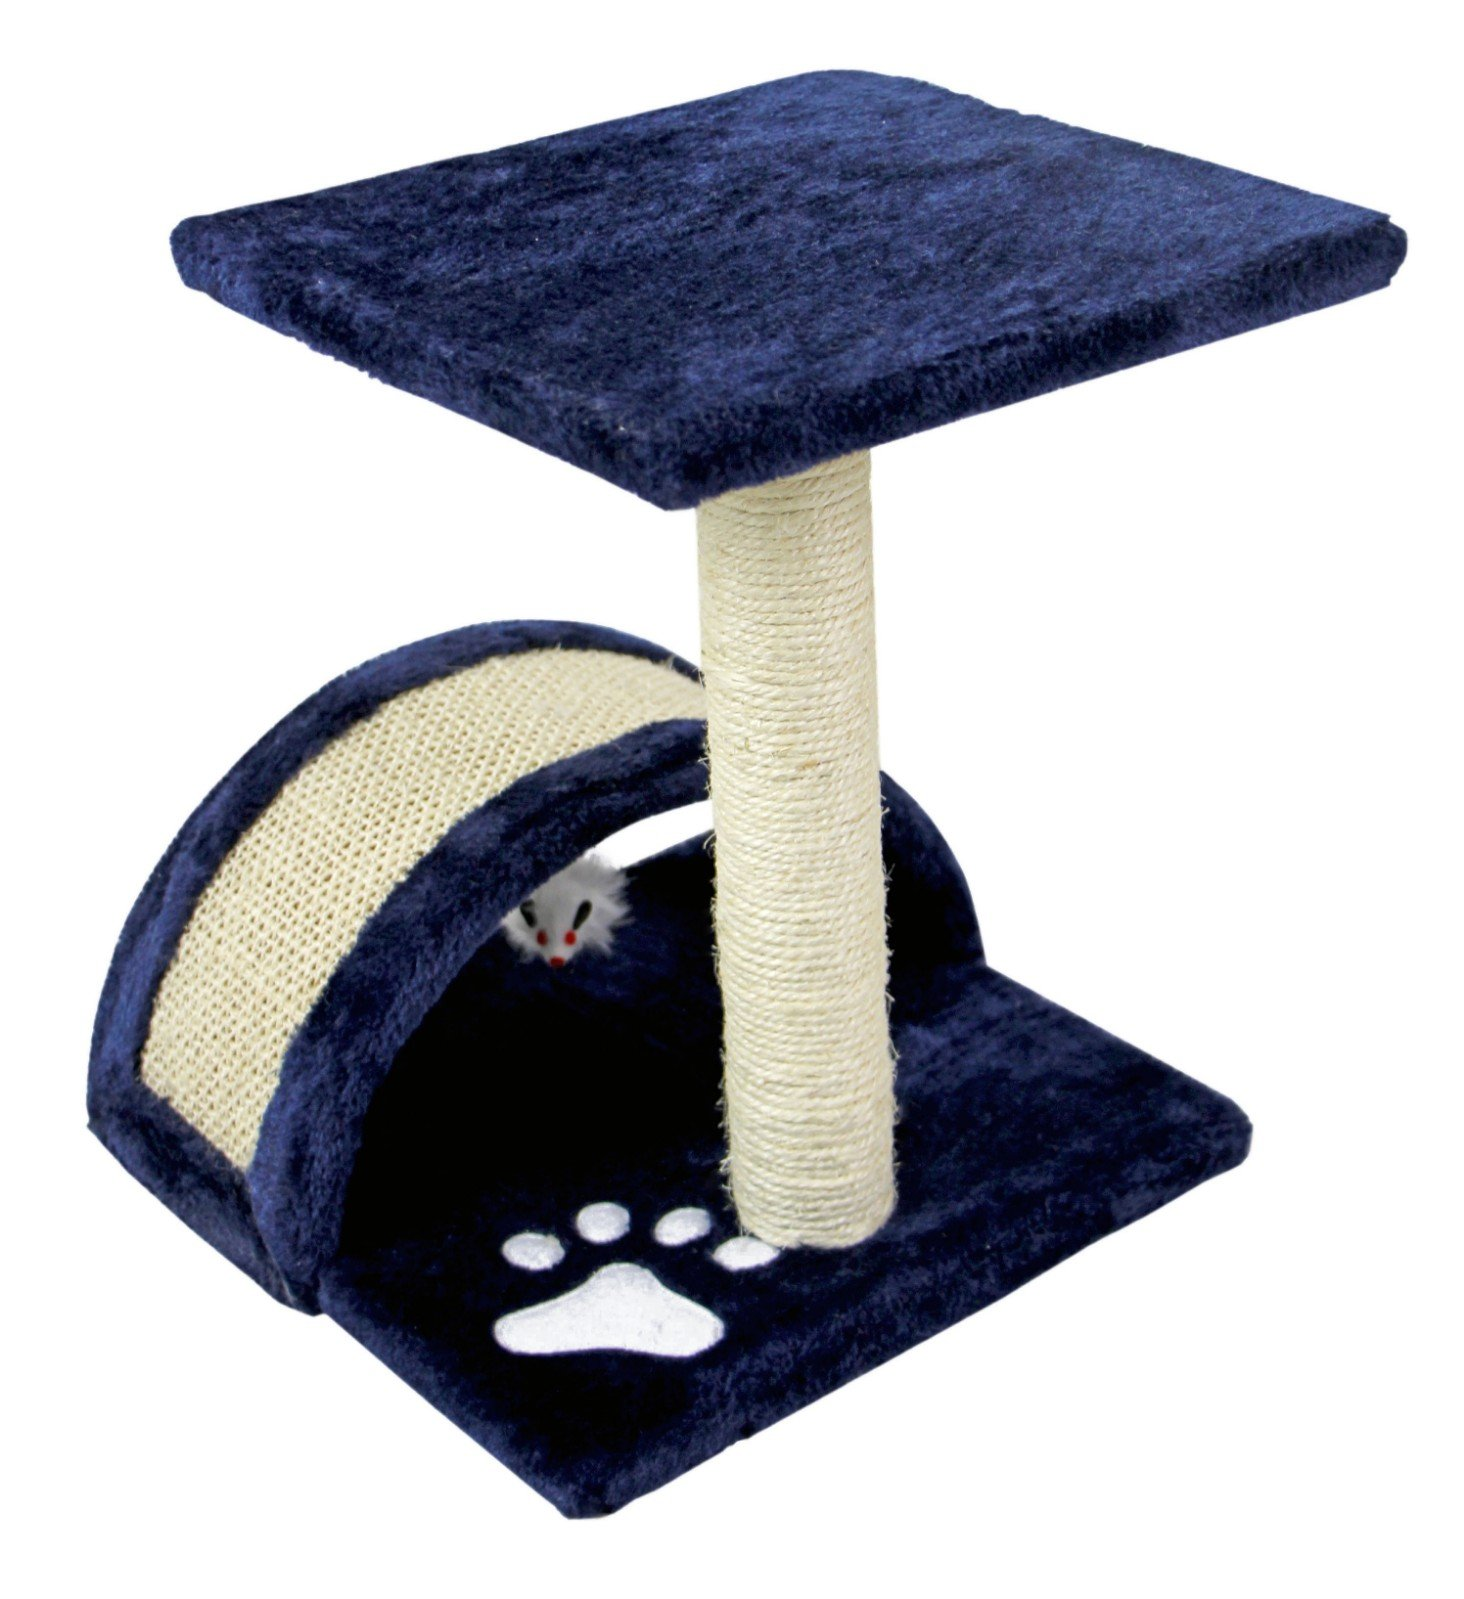 Hiding Cat Tree Sisal Scratching Post Furniture Playhouse Pet Bed Kitten Toy Cat Tower Condo for Kittens, Small, Navy Blue